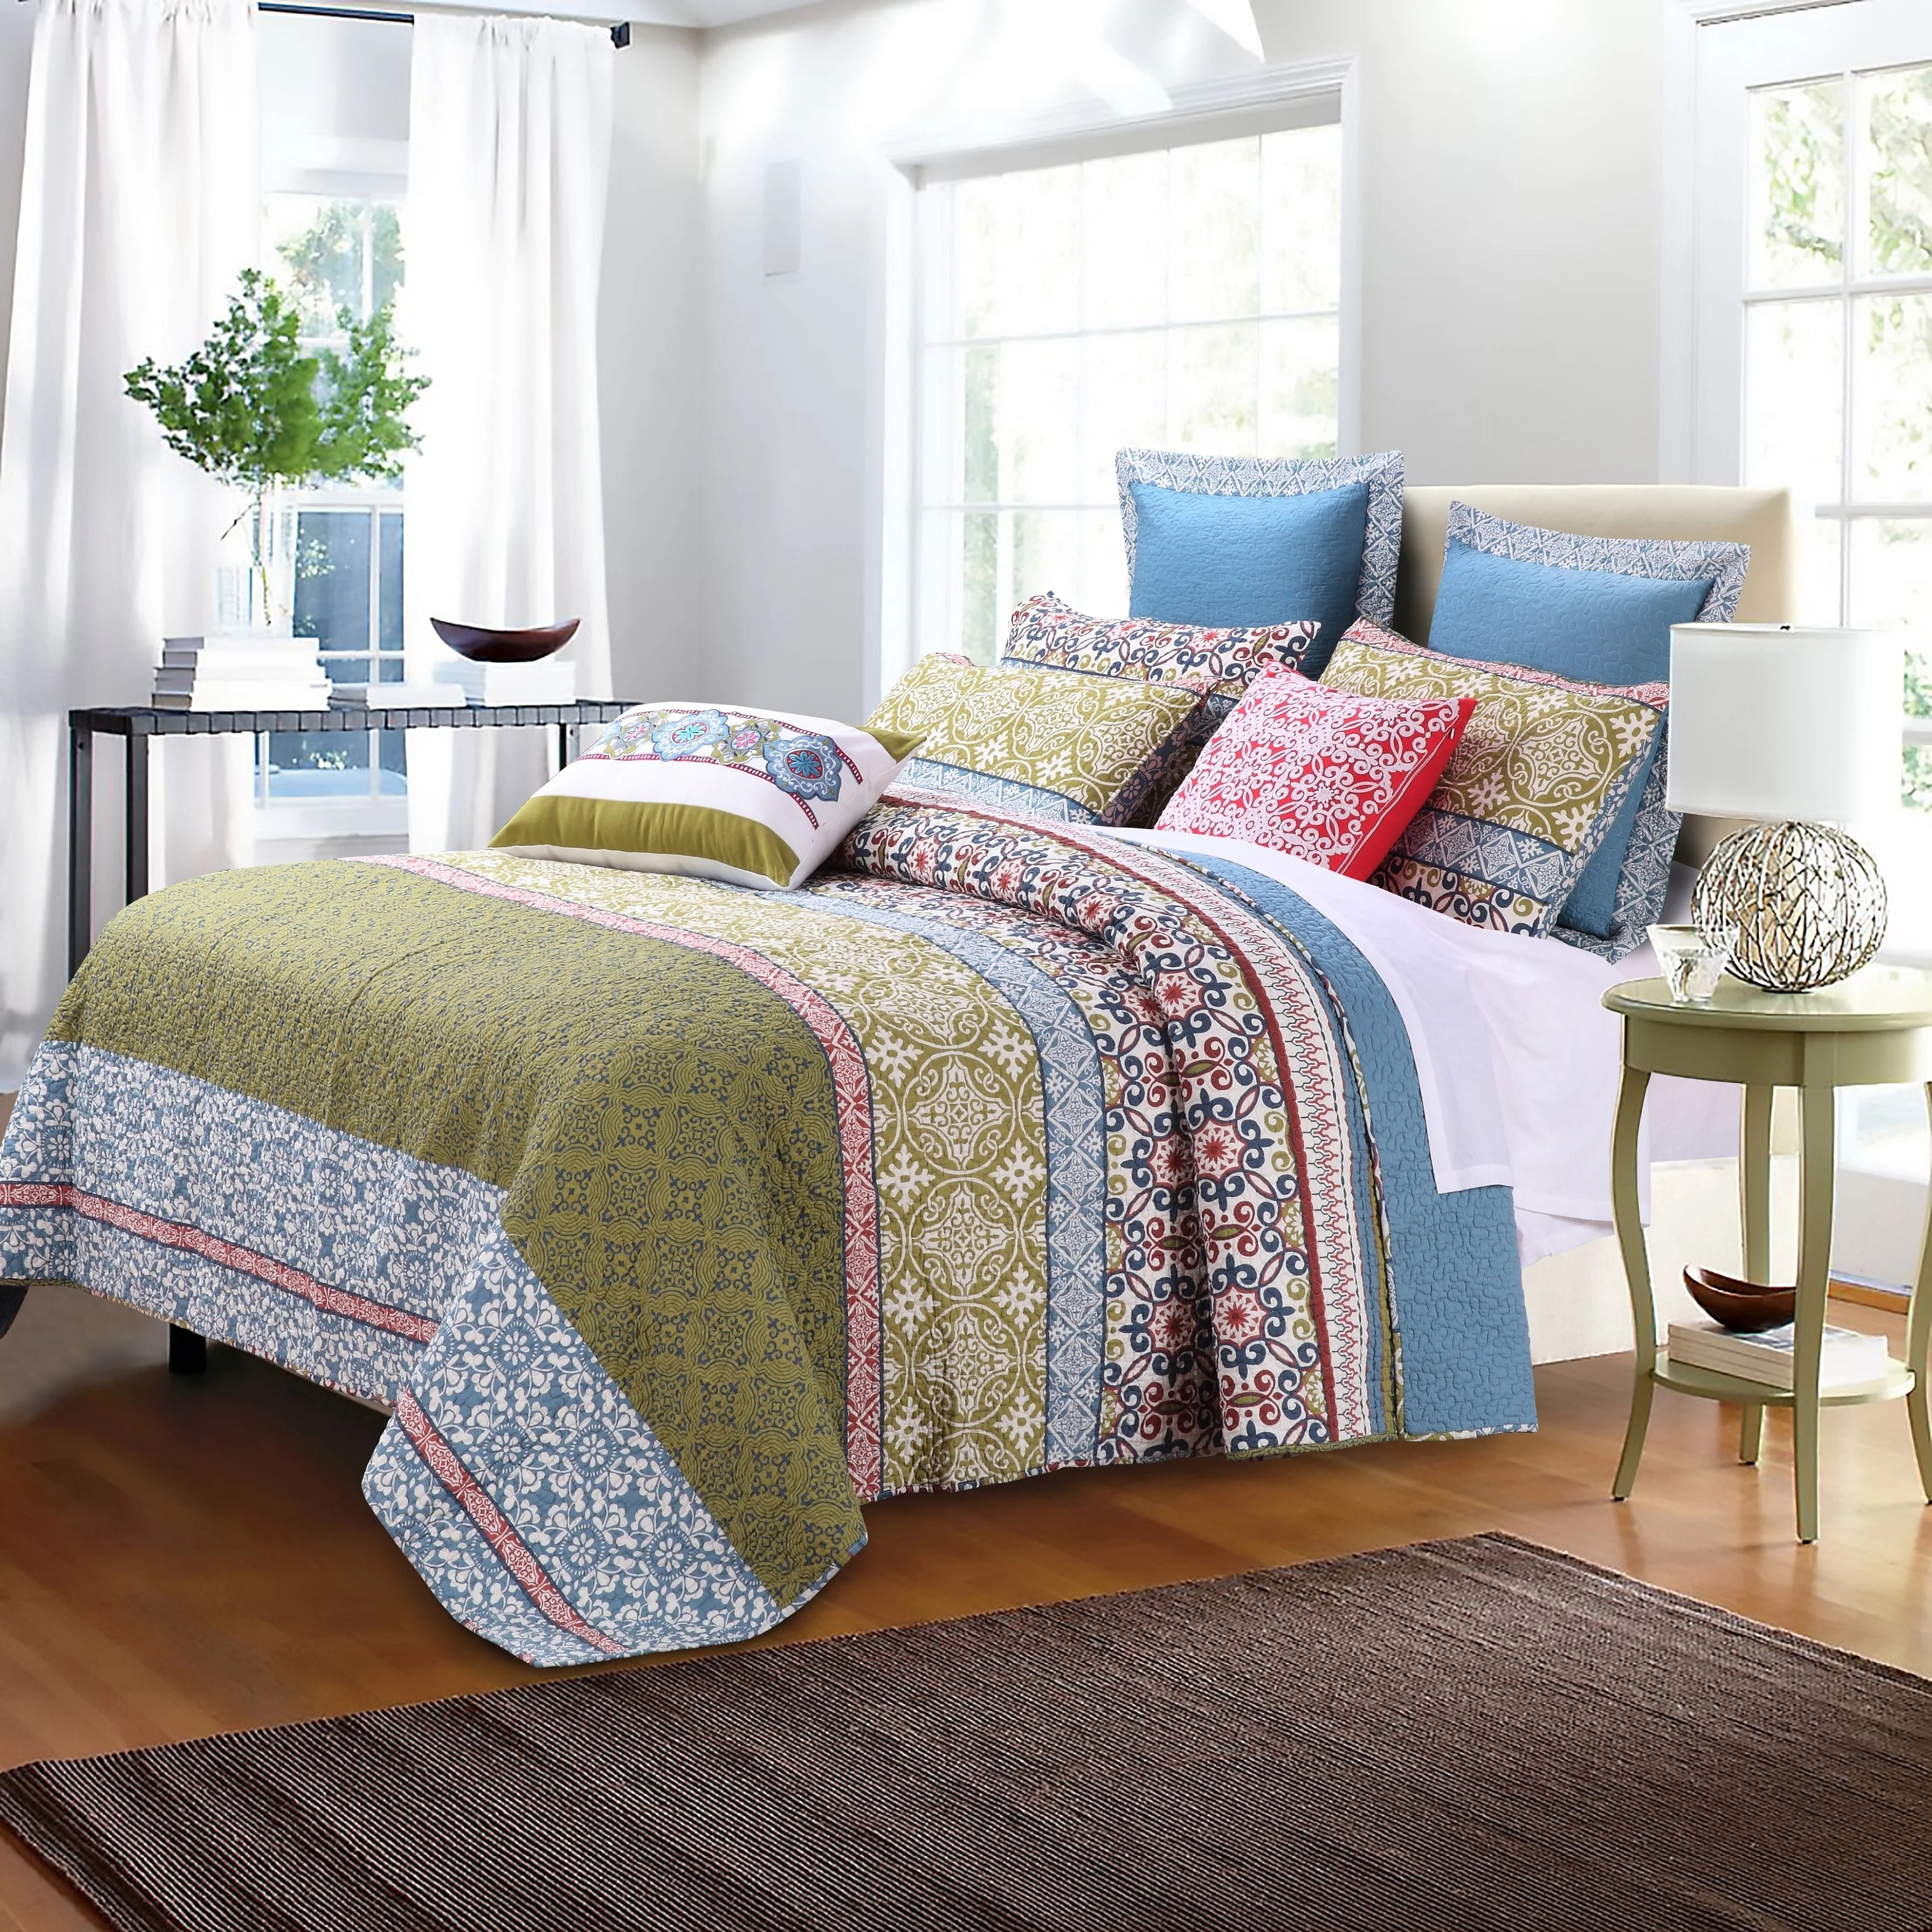 Quilt Sets Greenland Home Fashions Shangri La Oversized Cotton 3 Piece Quilt Set